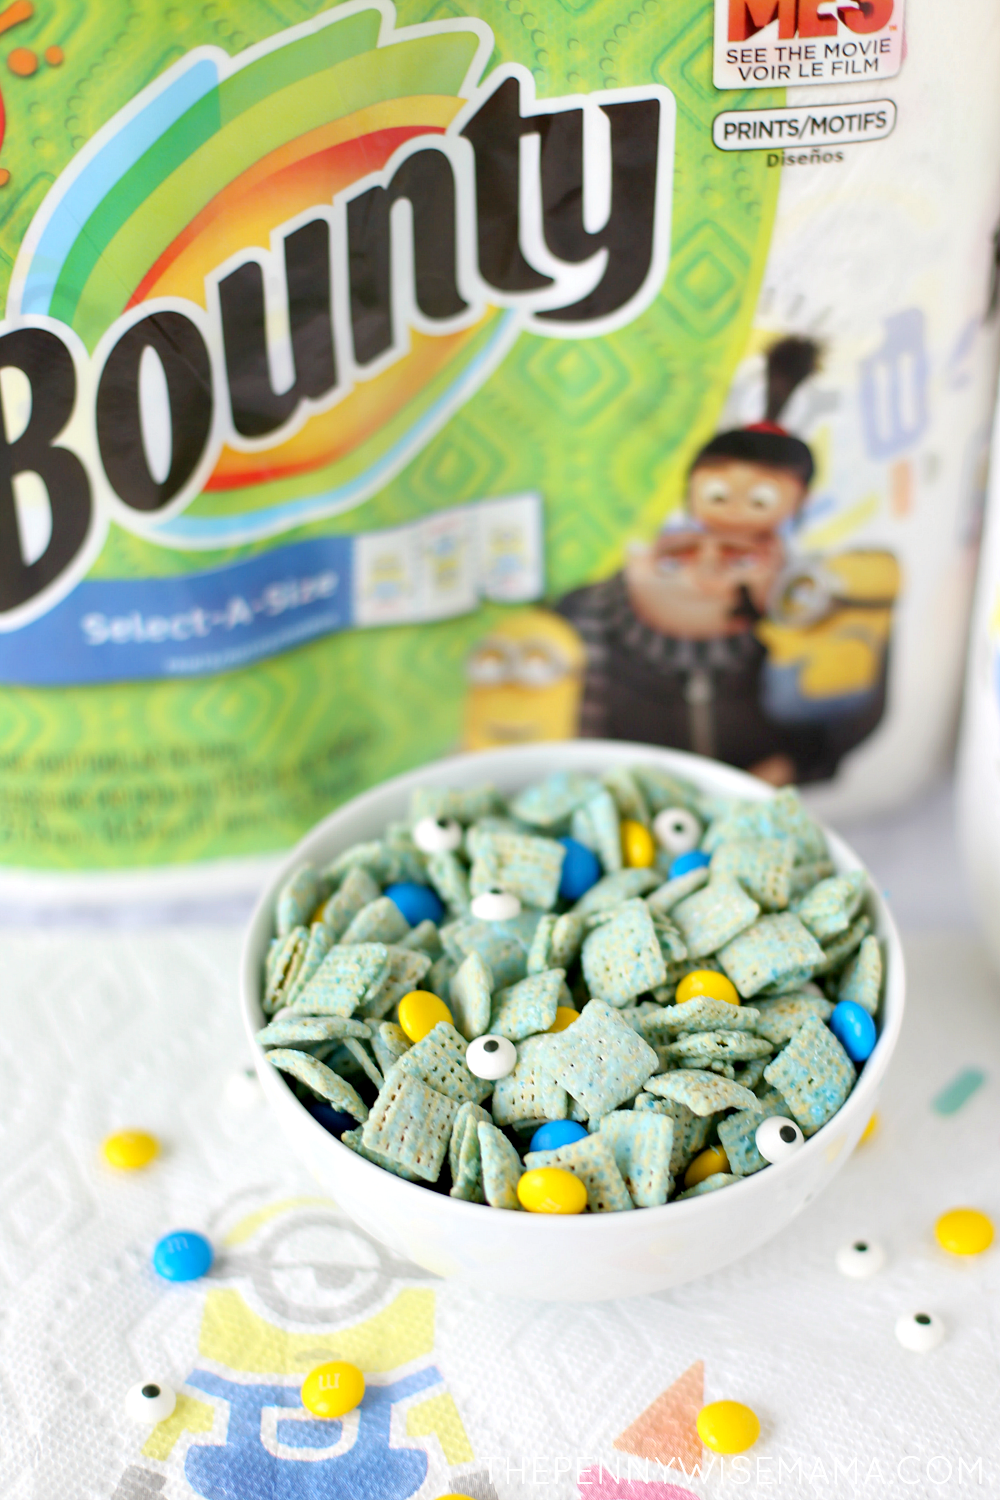 Bounty Despicable Me 3 prints + Minions Muddy Buddies